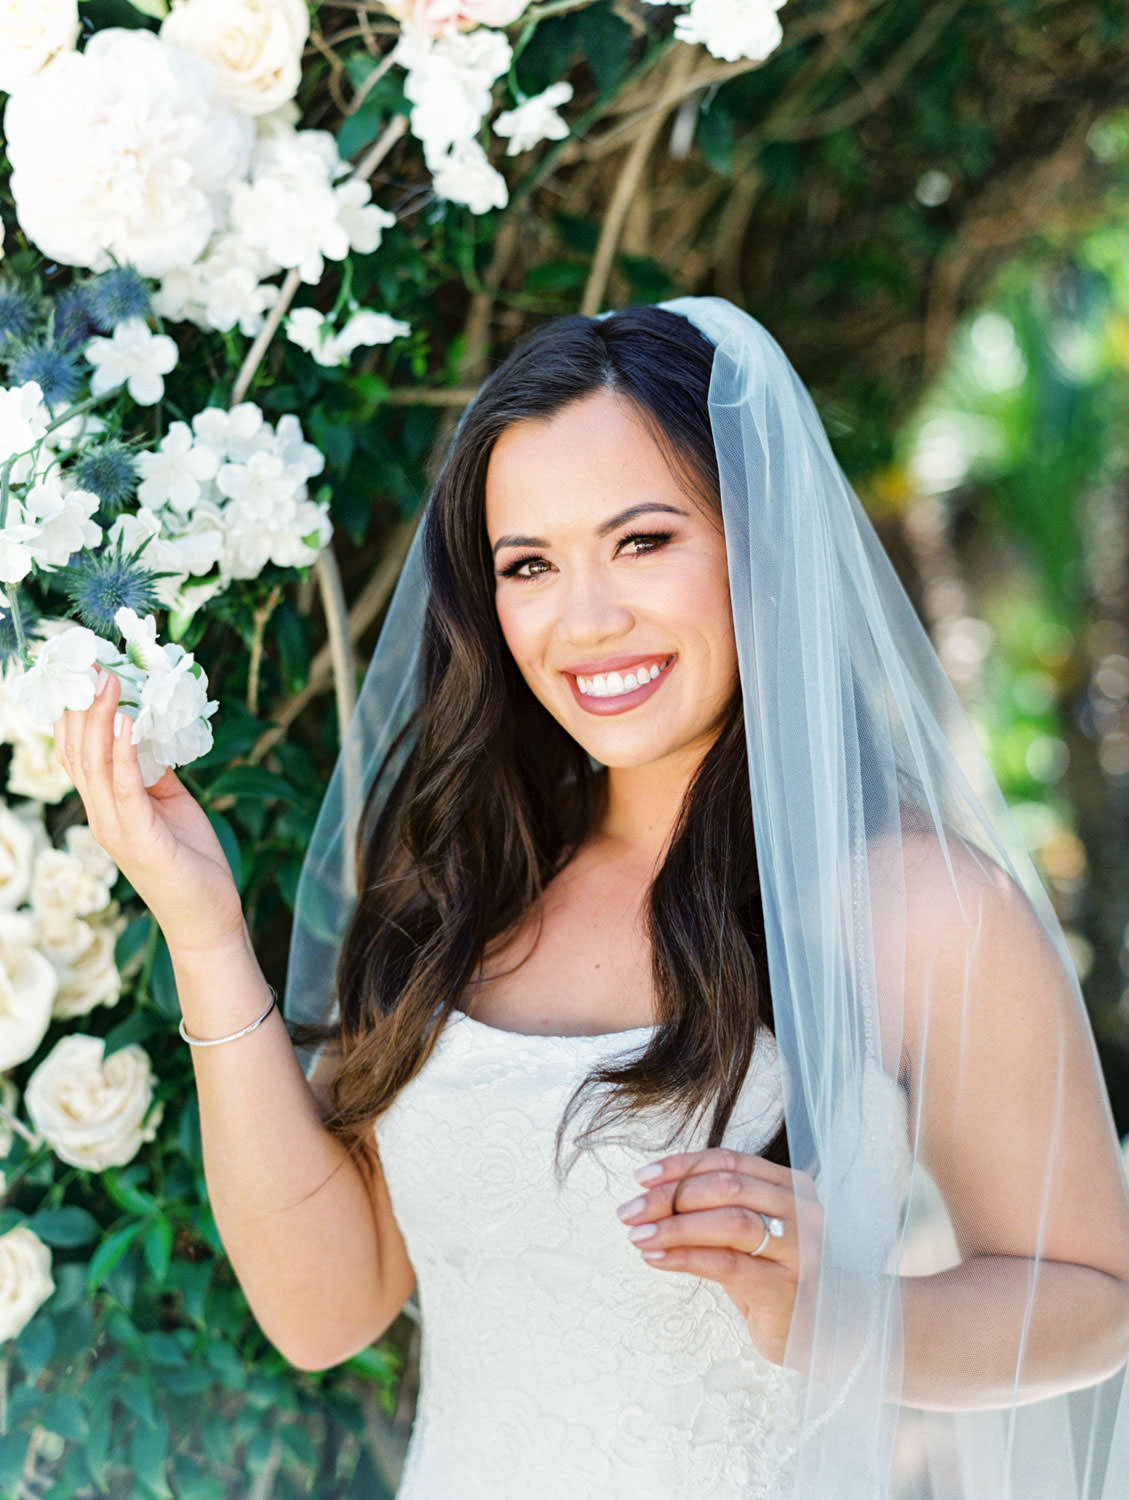 Bridal portrait with veil in front of floral arch on film. Wedding at Humphreys Half Moon Inn by Cavin Elizabeth Photography